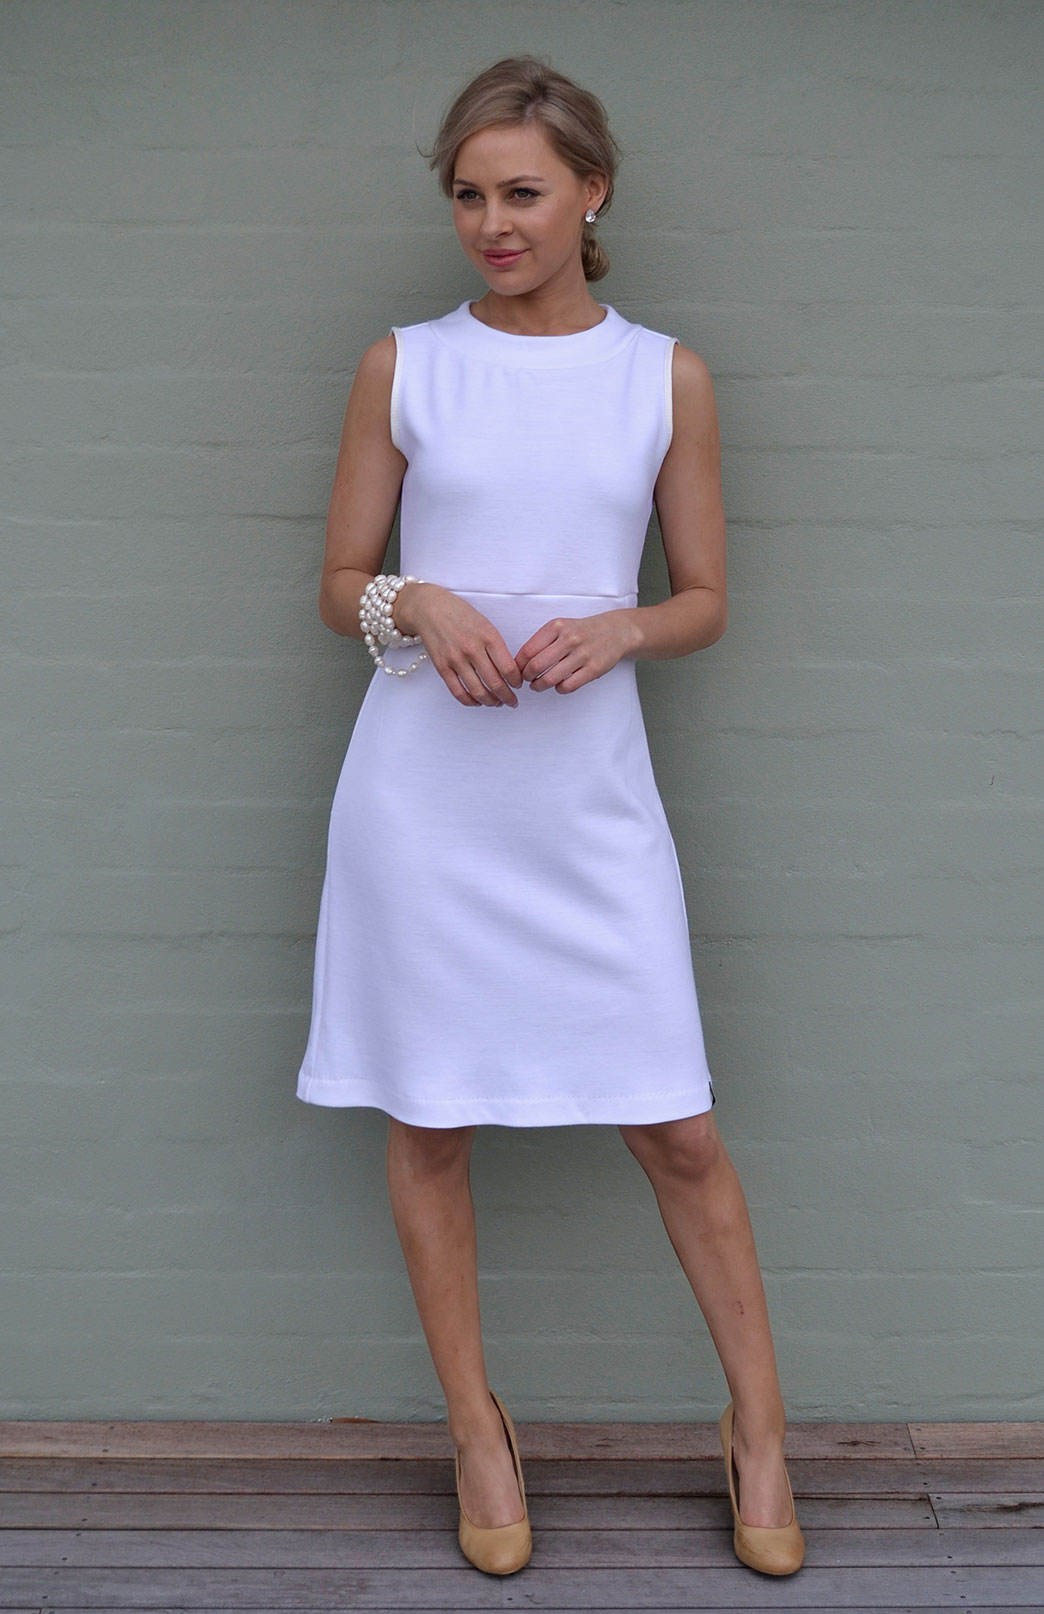 Asha Straight Dress - Women's Ivory Straight Wool Dress - Smitten Merino Tasmania Australia